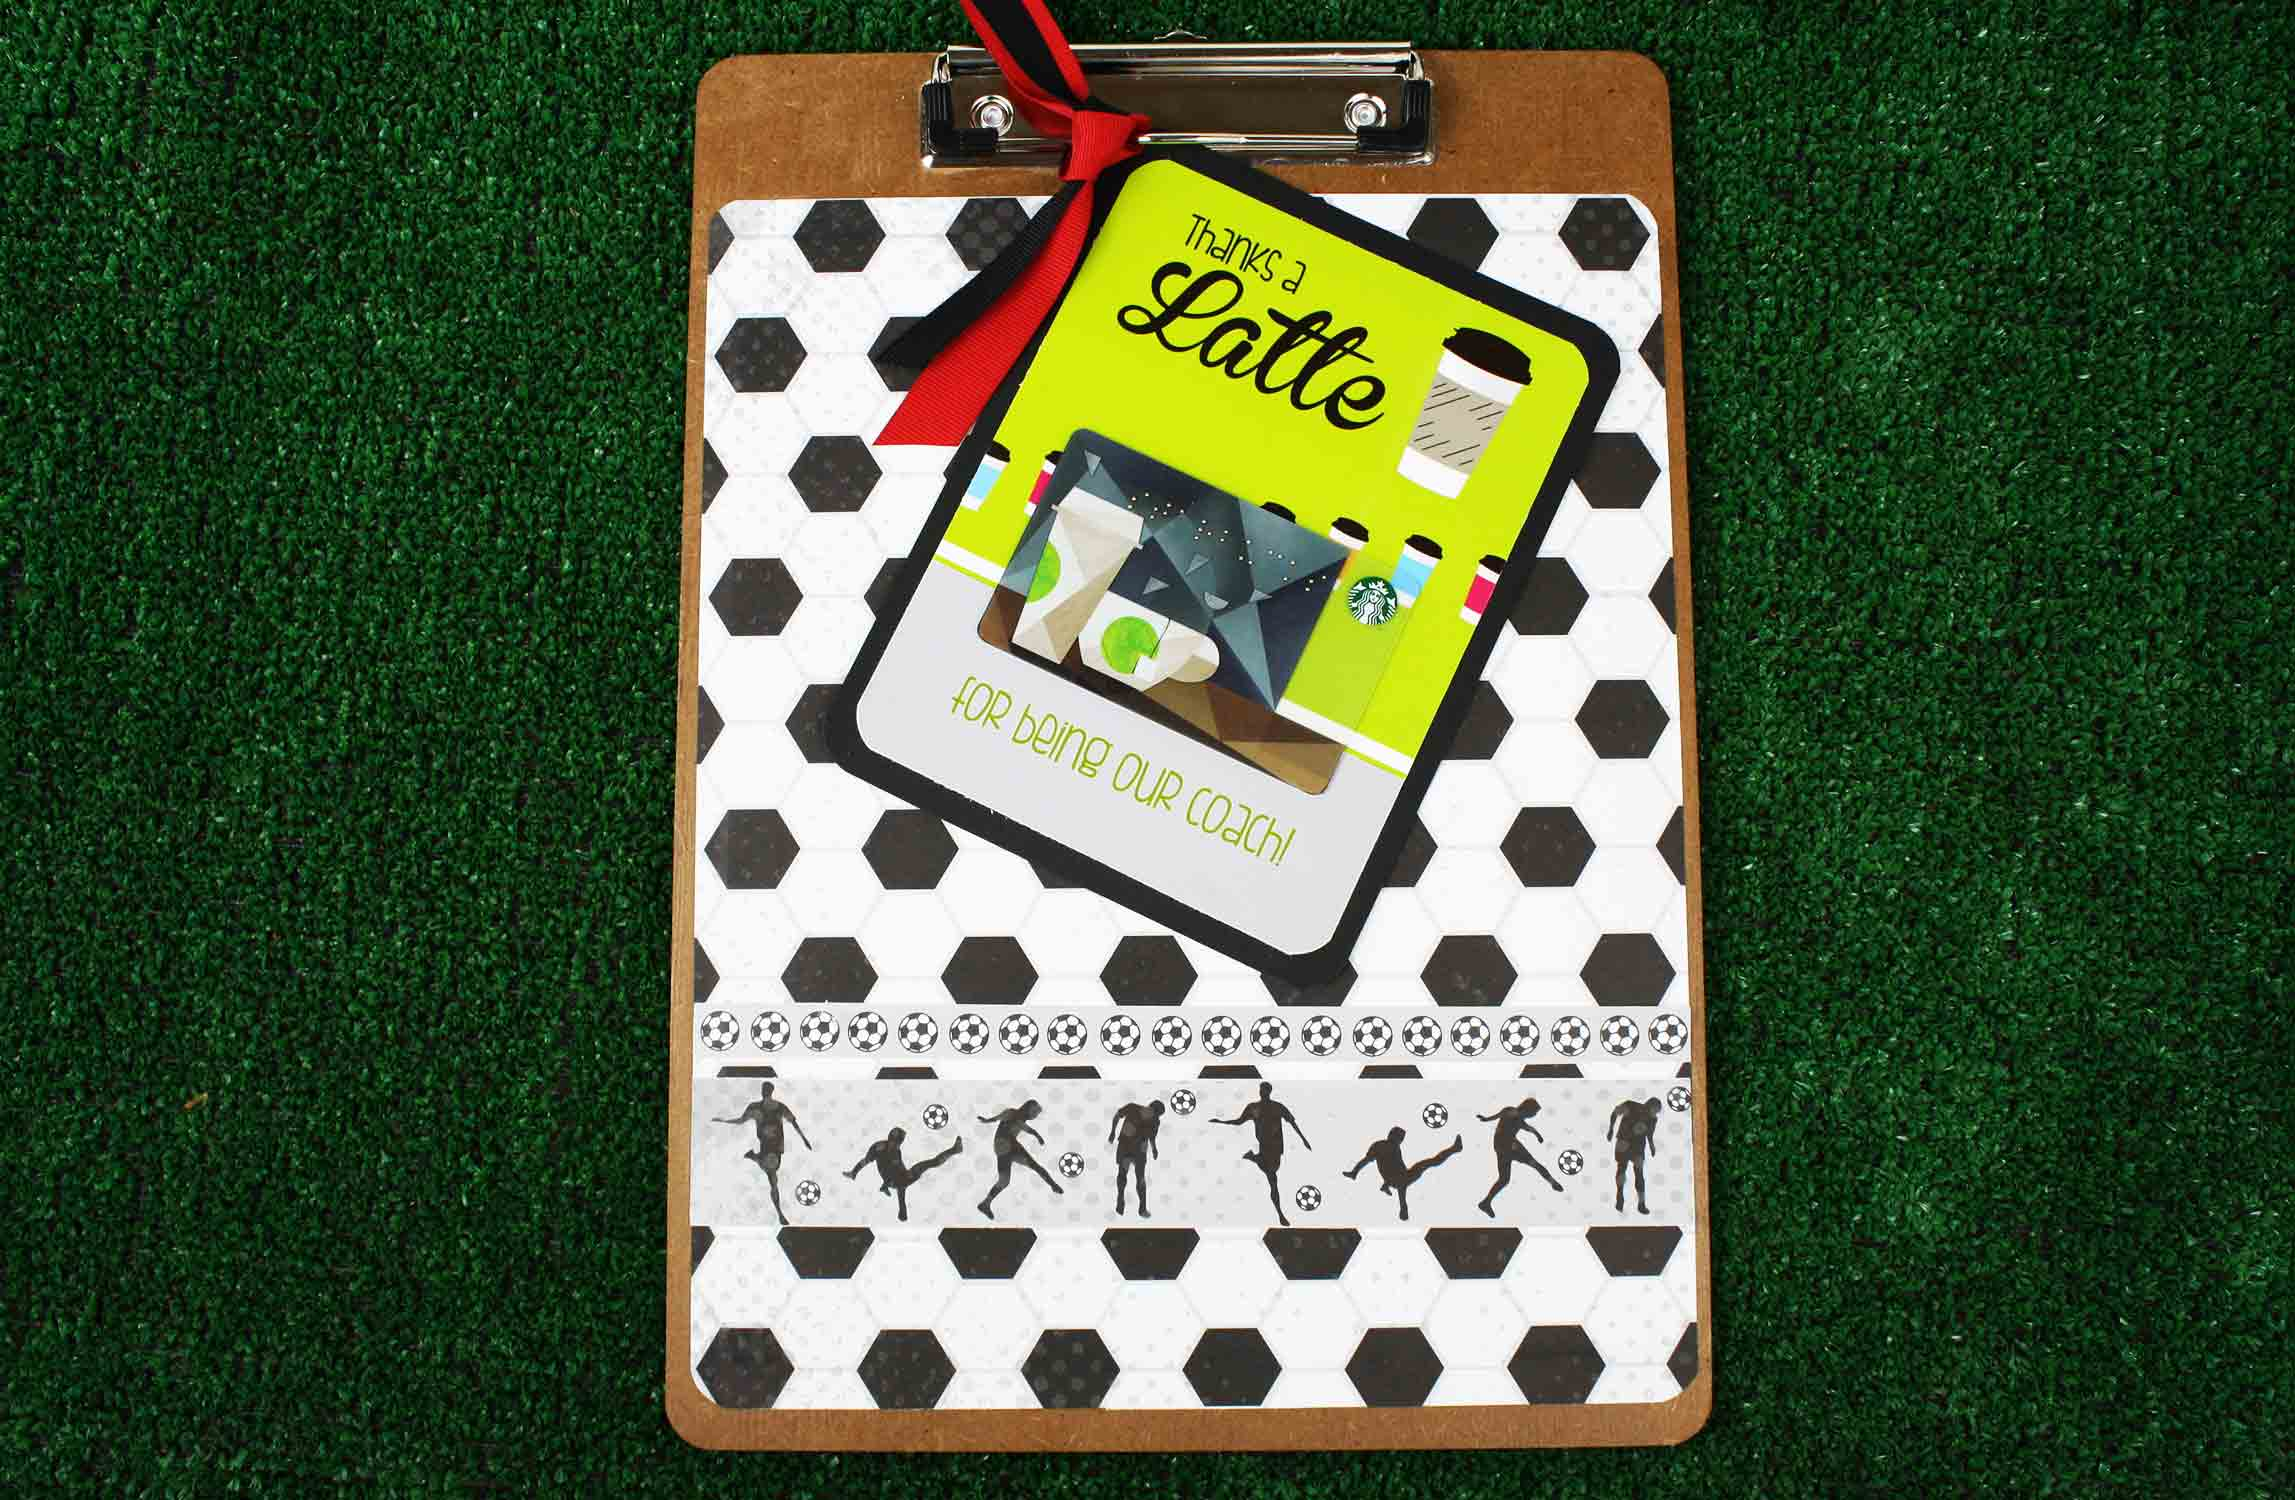 clipboard to hold Latte gift card